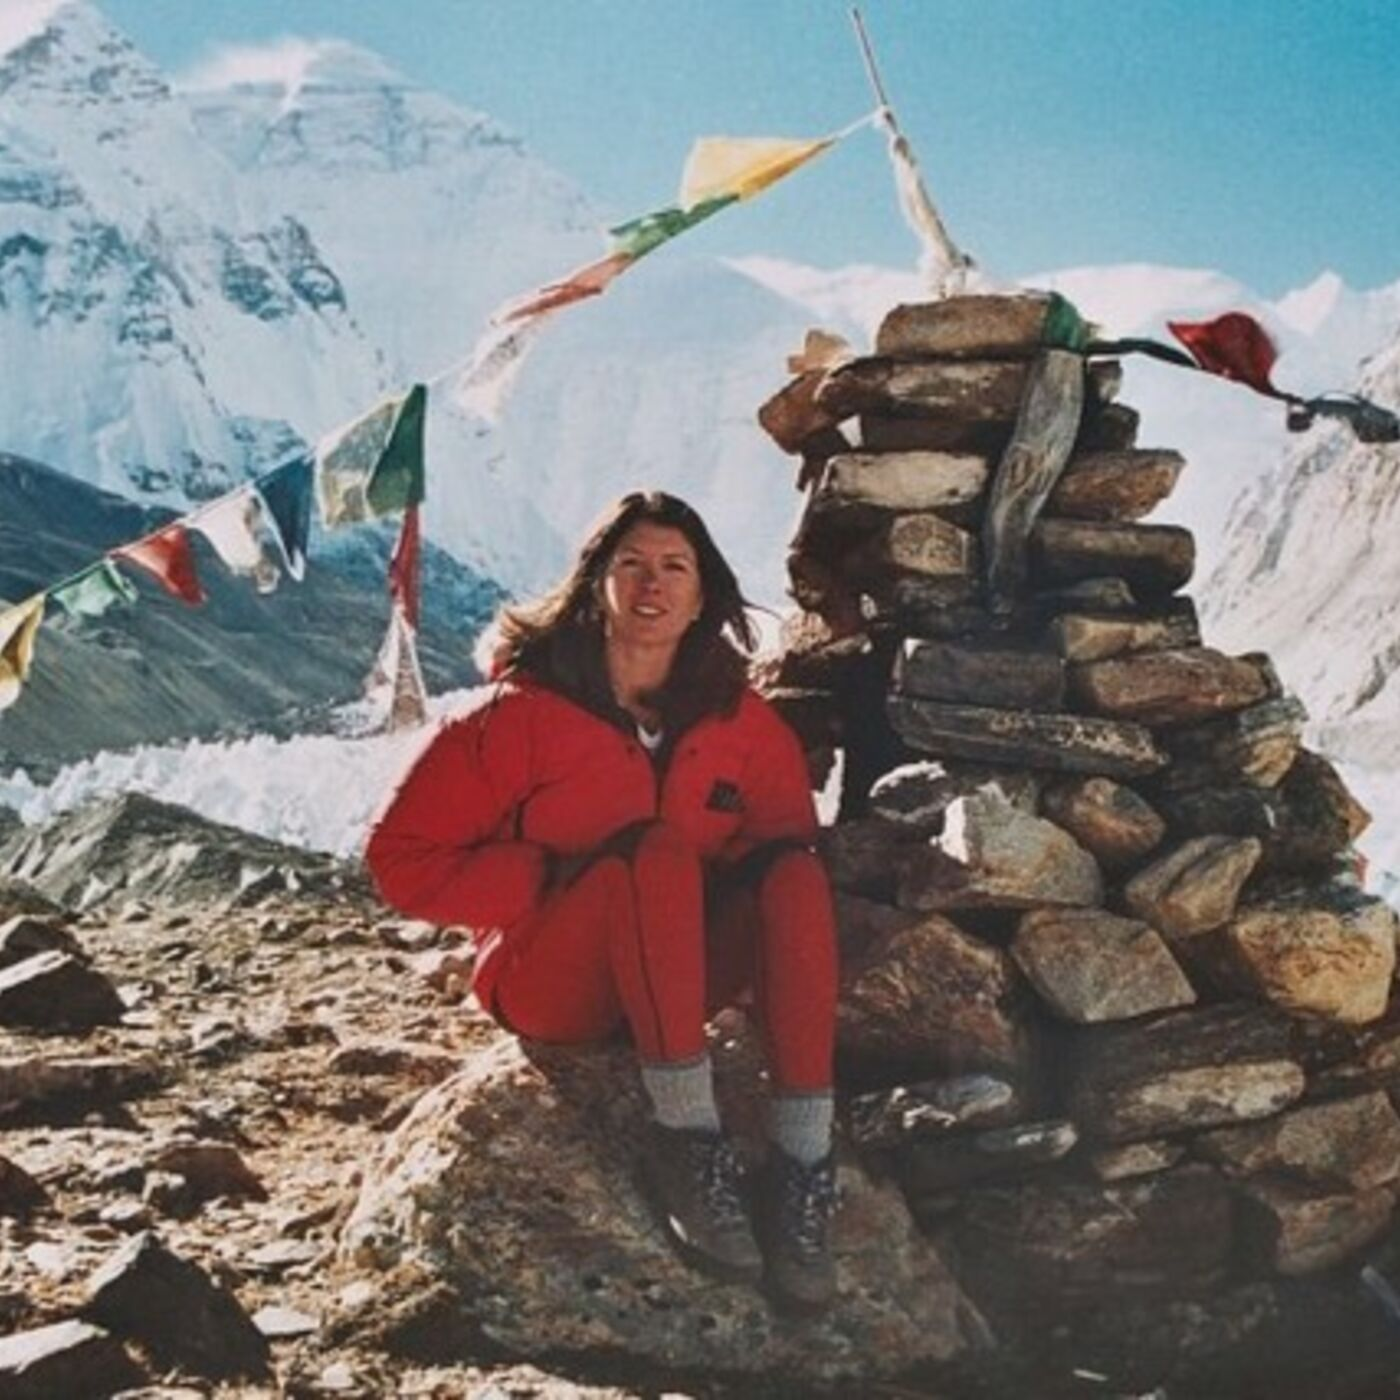 The Seven Summits: Climbing the Highest Mountain on Each of the Seven Continents with Rebecca Stephens MBE